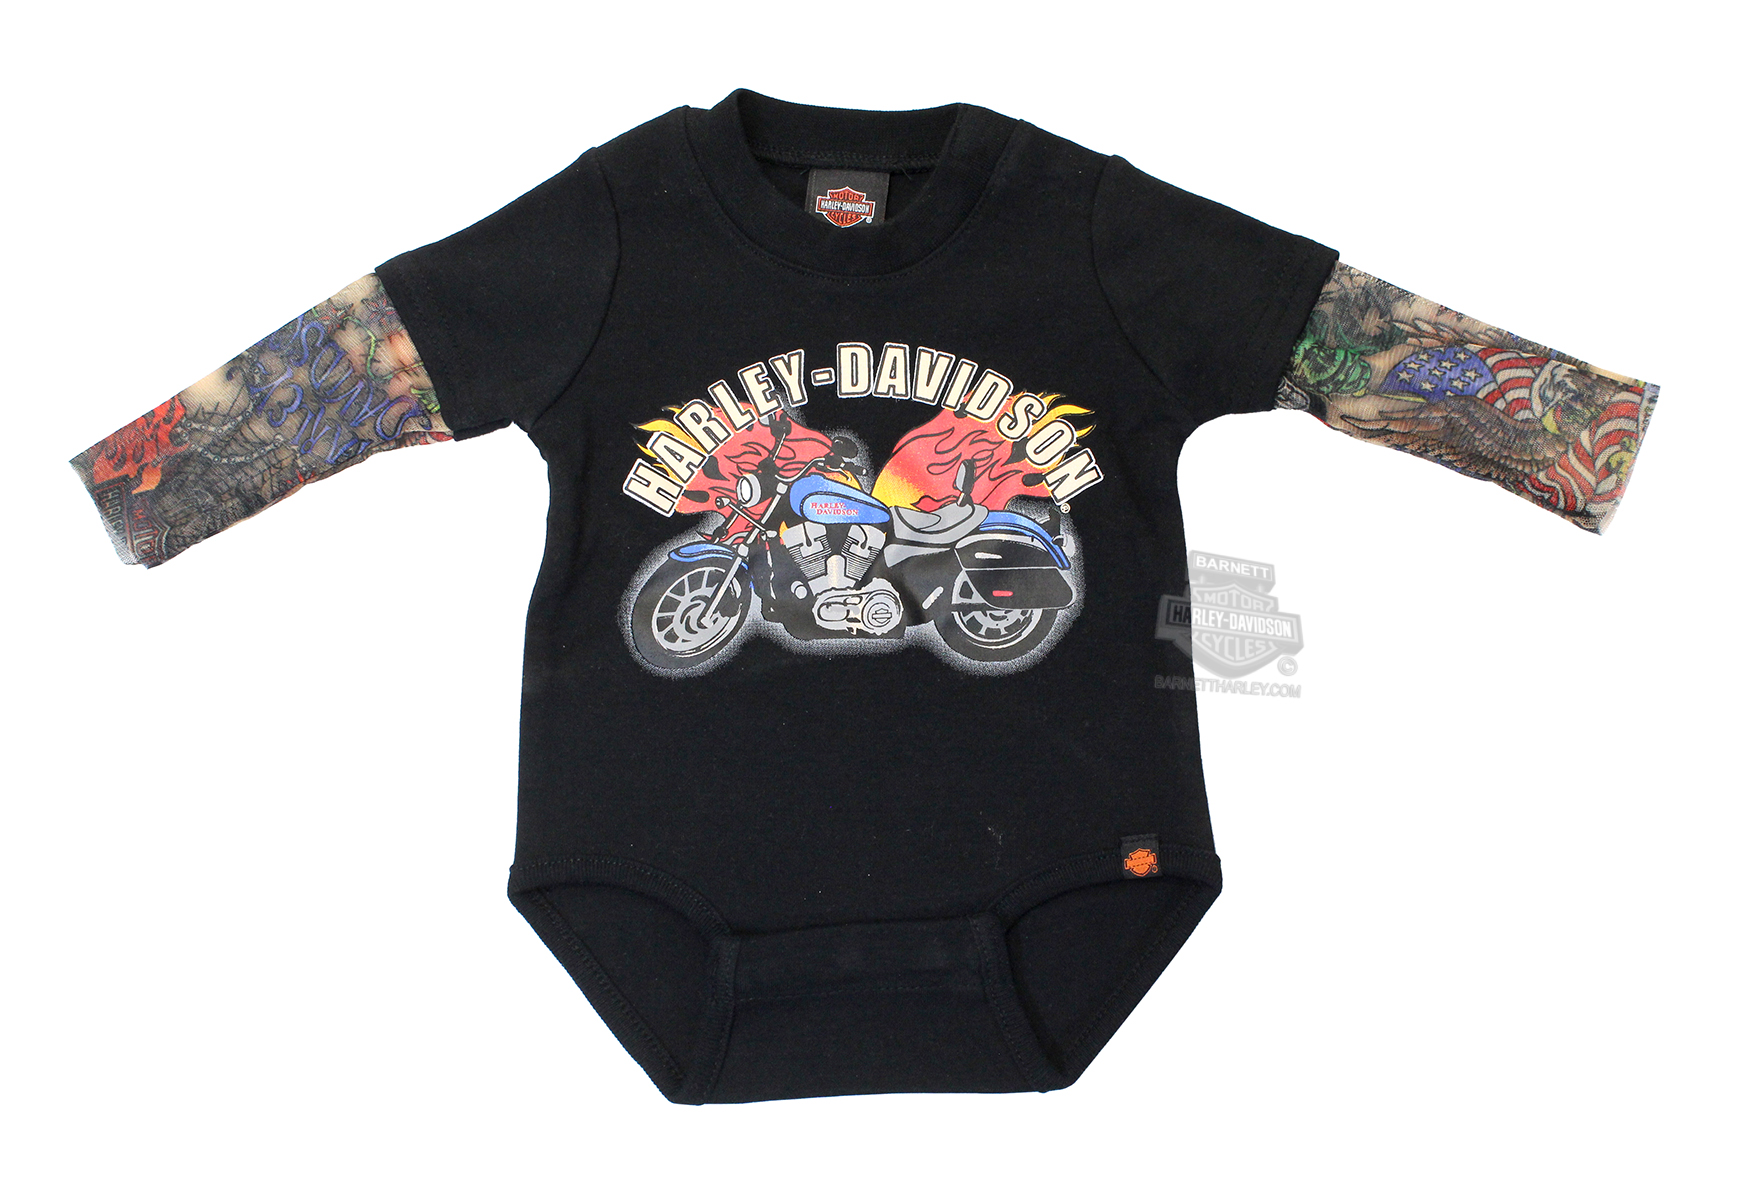 8cc7c29f7e7 SG30-0641 - Harley-Davidson® Boys Baby Flaming Motorcycle with ...